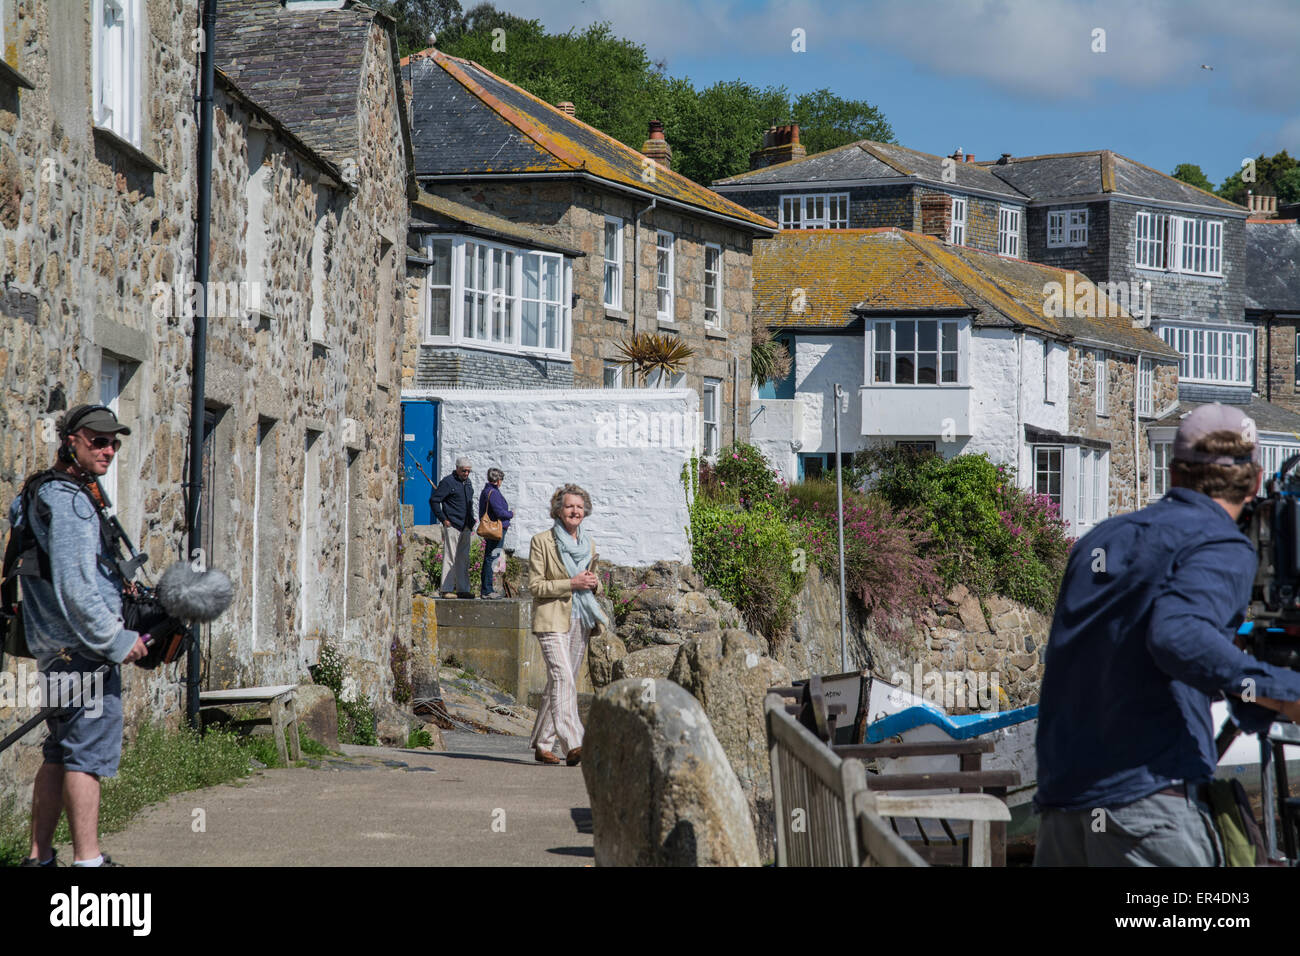 Mousehole, Cornwall, UK. 27th May 2015. Television actress Penelope Keith filming the second series of 'Secret - Stock Image